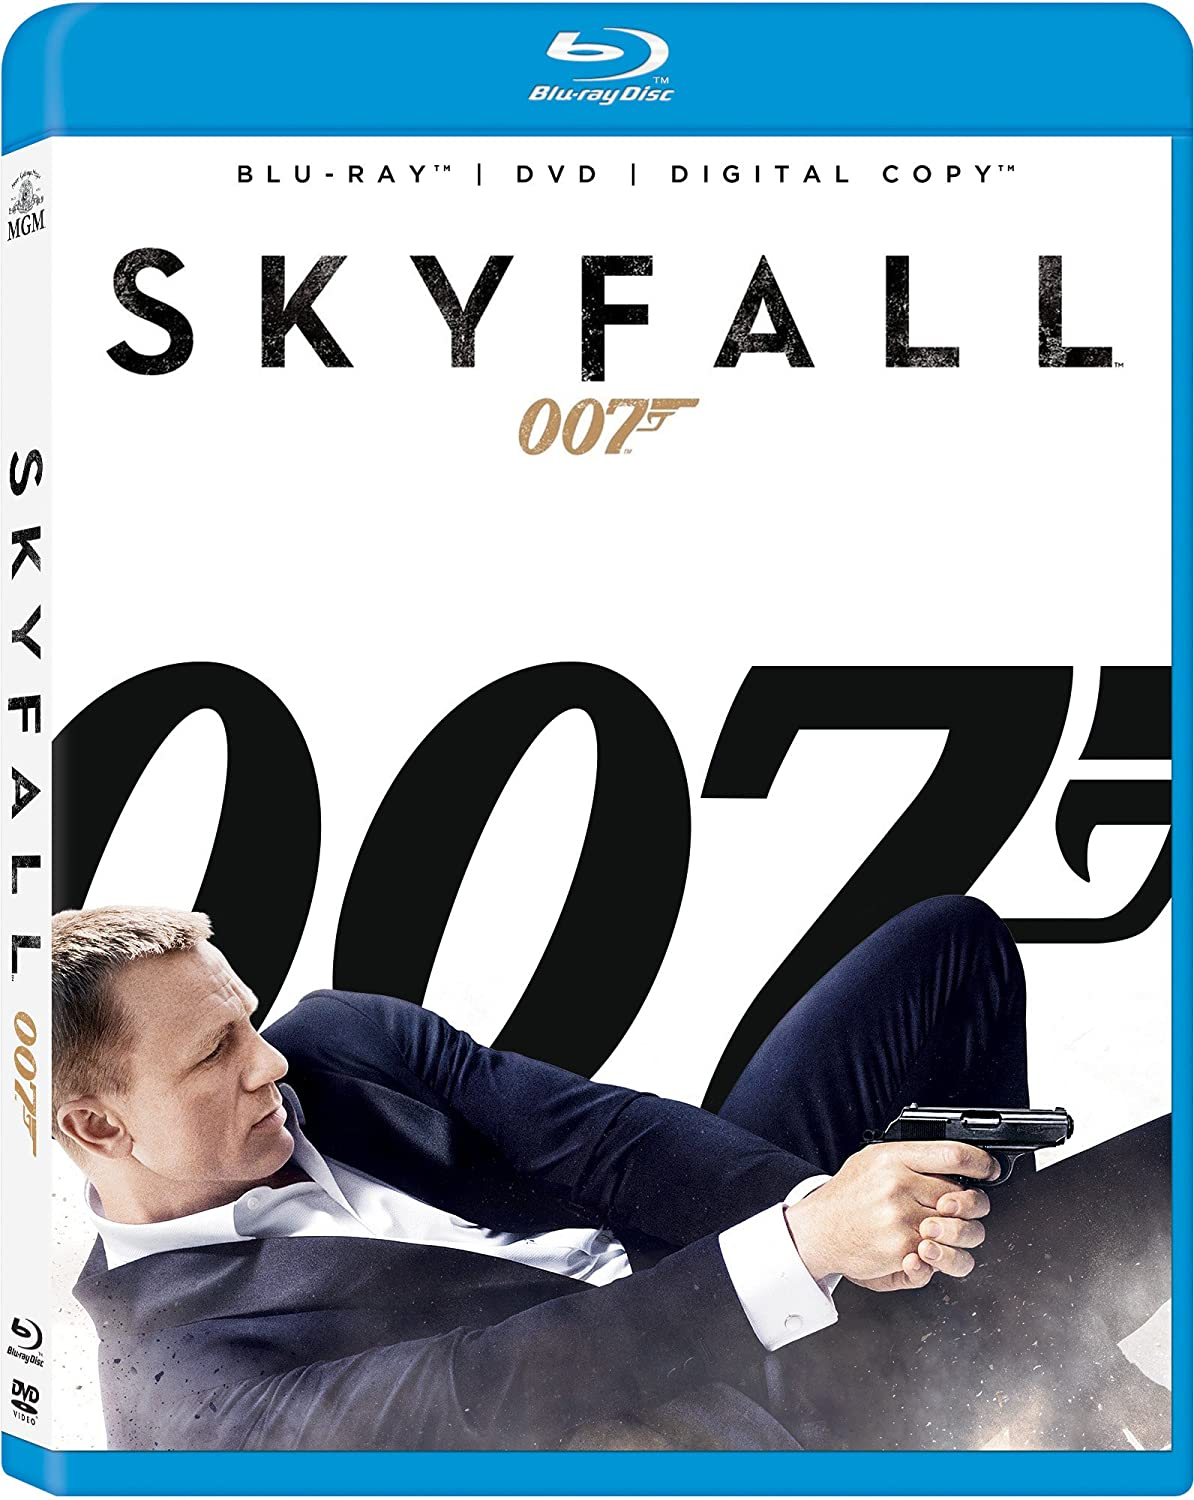 Skyfall (Blu-ray/ DVD + Digital Copy) $12